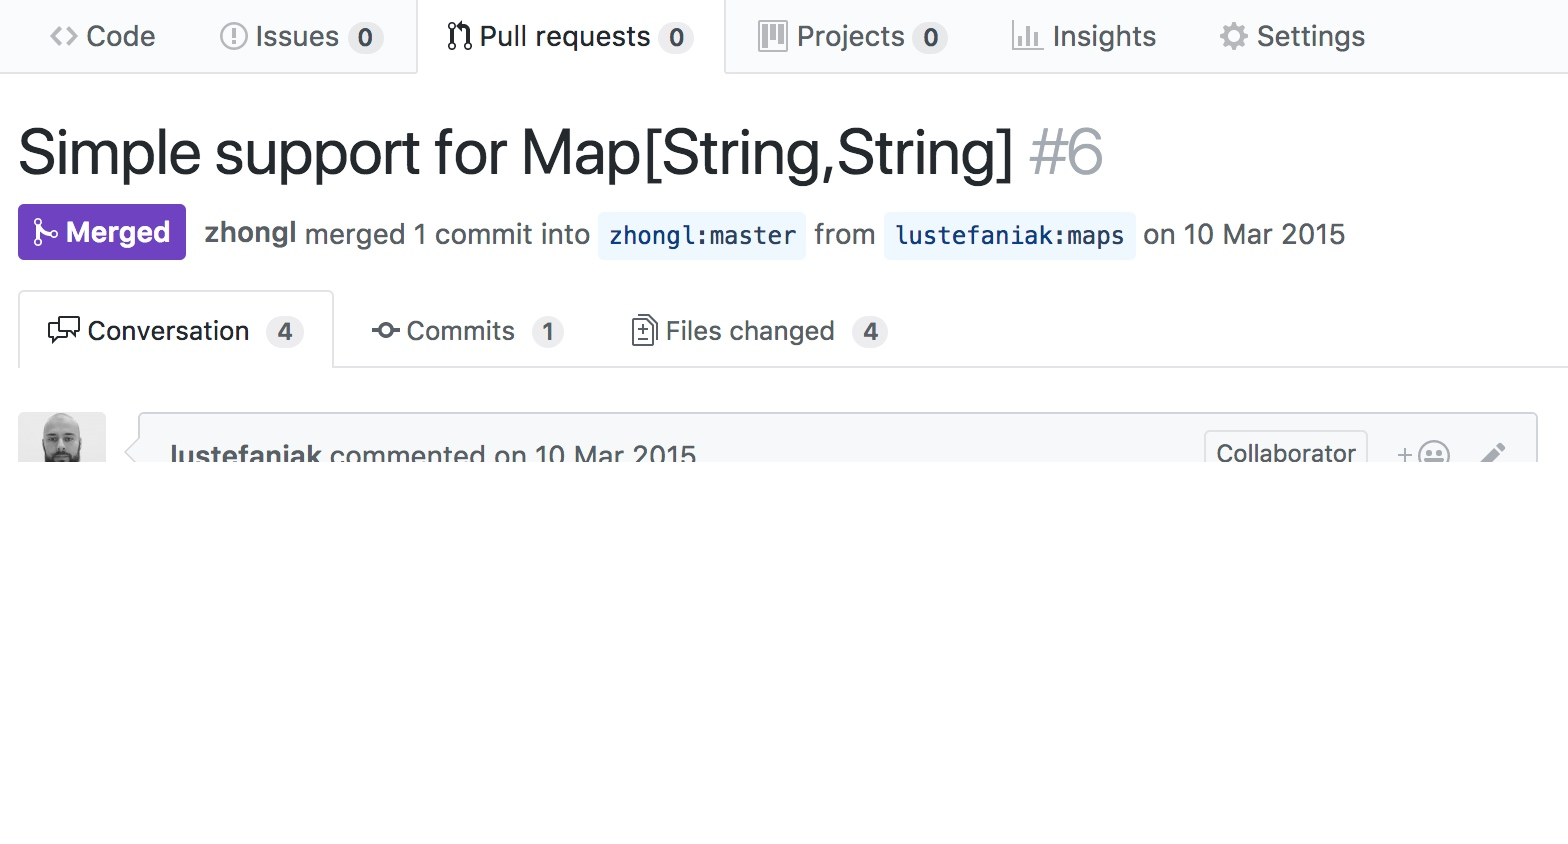 image pull request